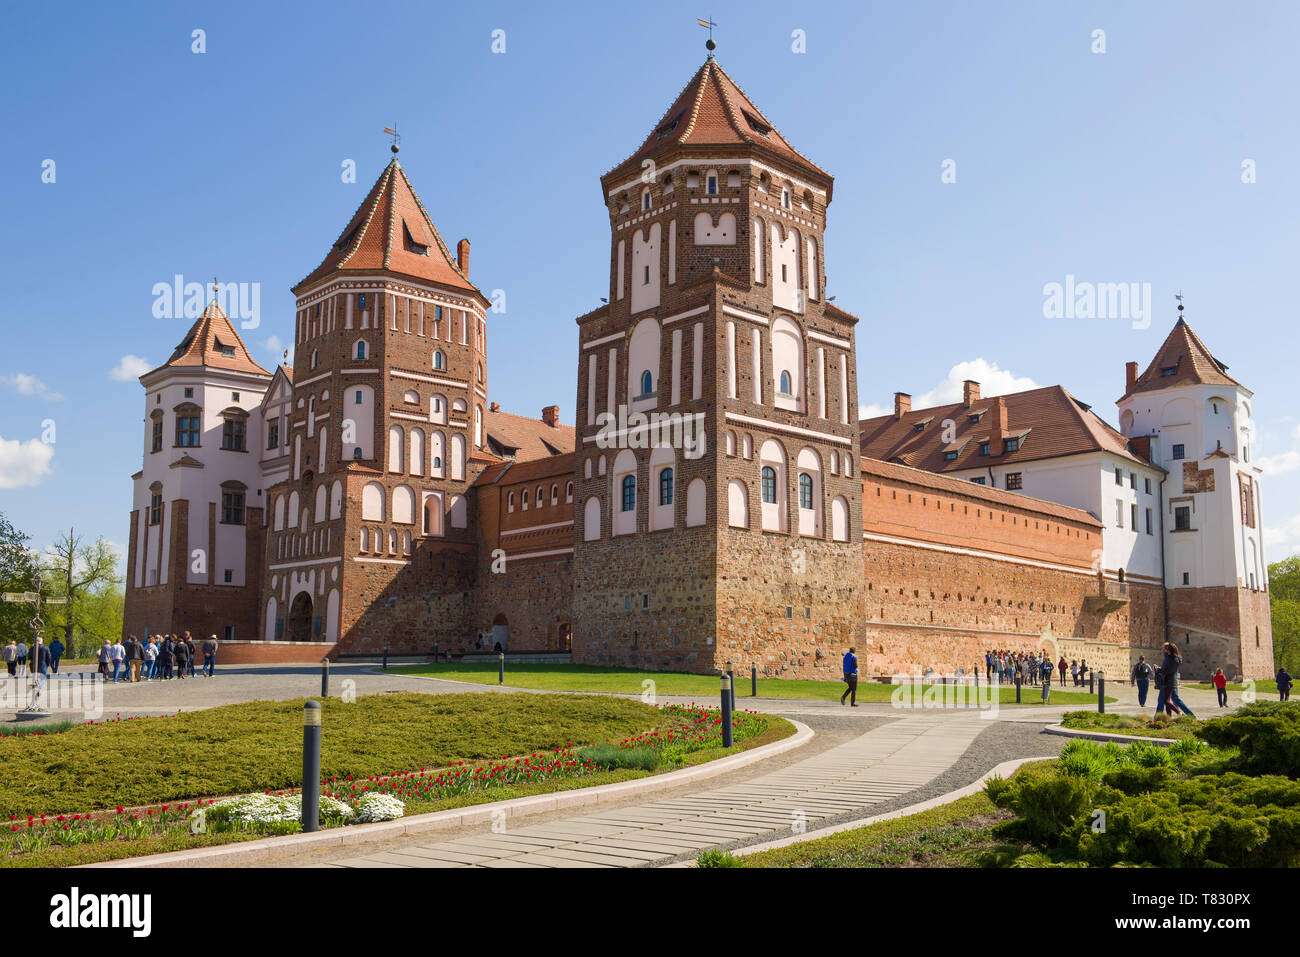 MIR, BELARUS - MAY 01, 2019: Mir Castle close up on a sunny May morning - Stock Image